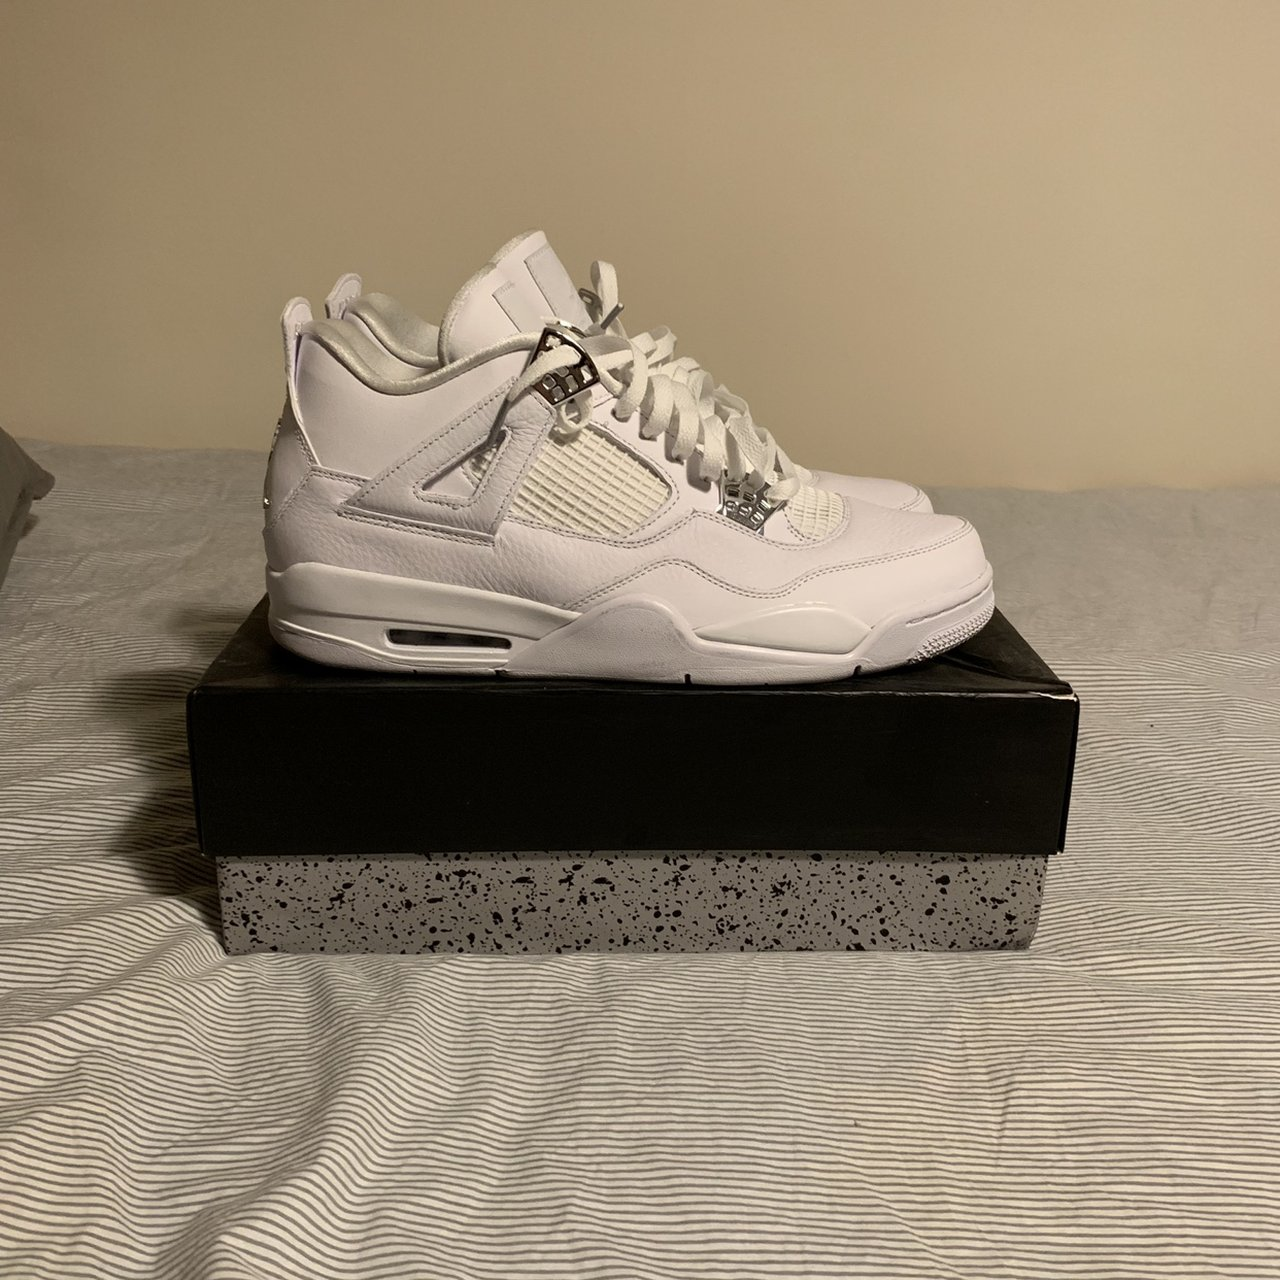 Jordan 4 Pure Money Condition  New c80a7db49